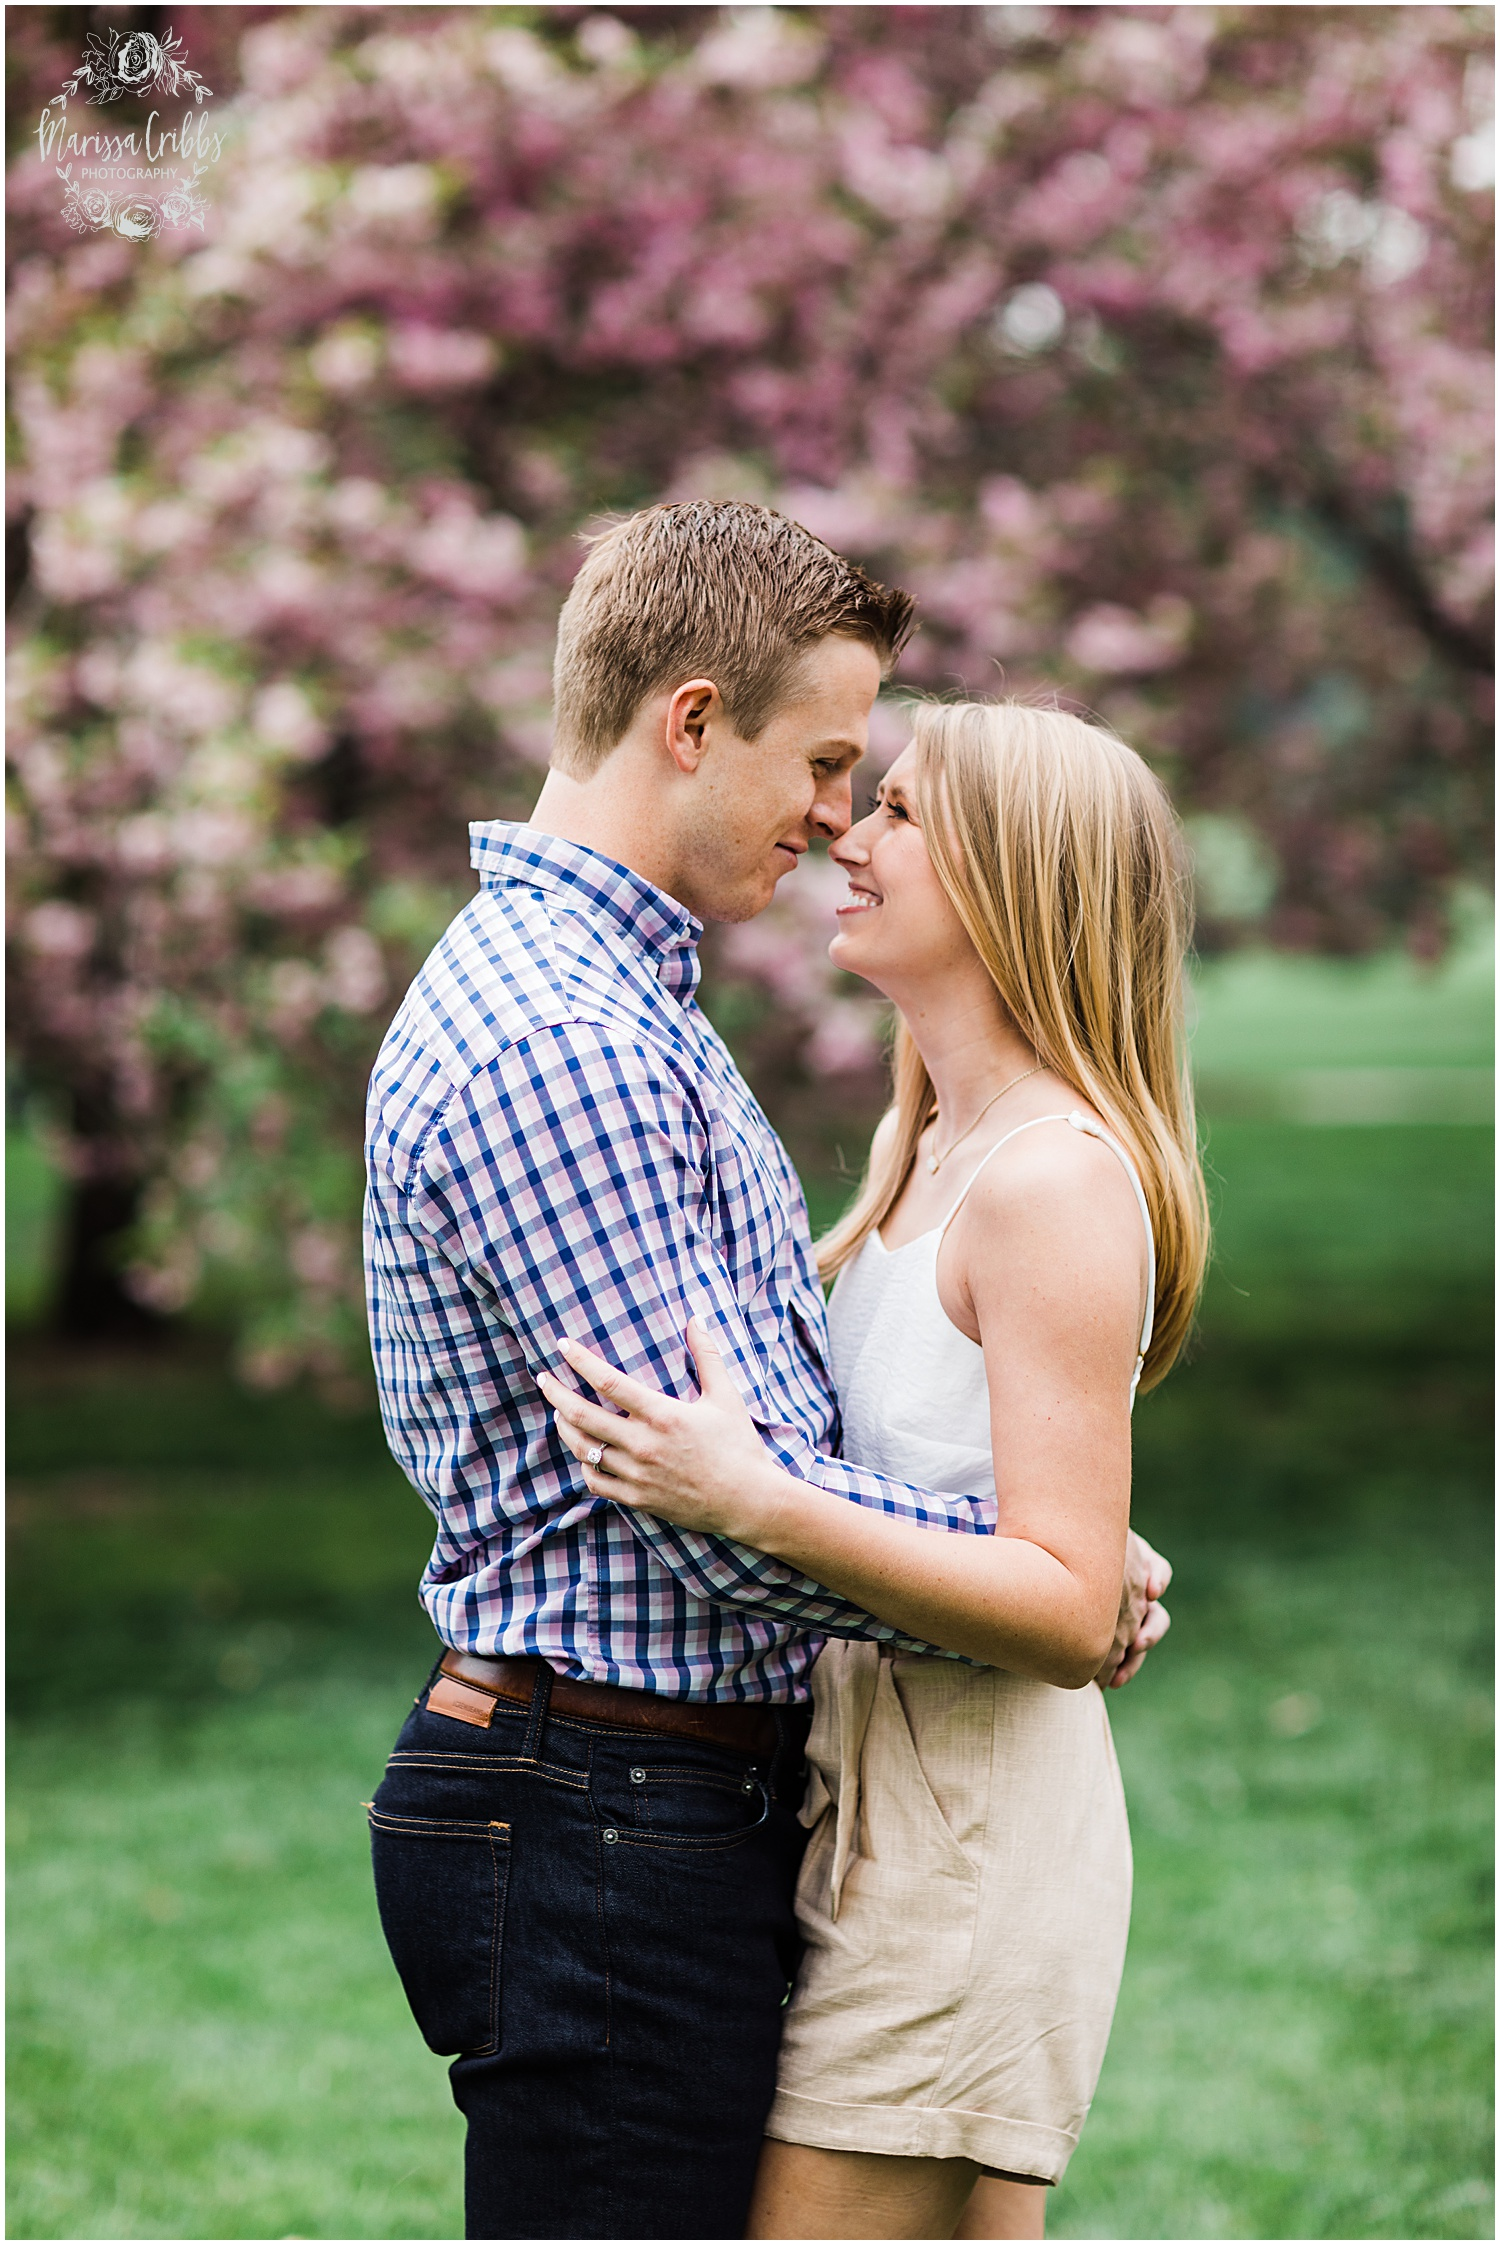 MADDY & KYLE ENGAGEMENT | MARISSA CRIBBS PHOTOGRAPHY_7600.jpg